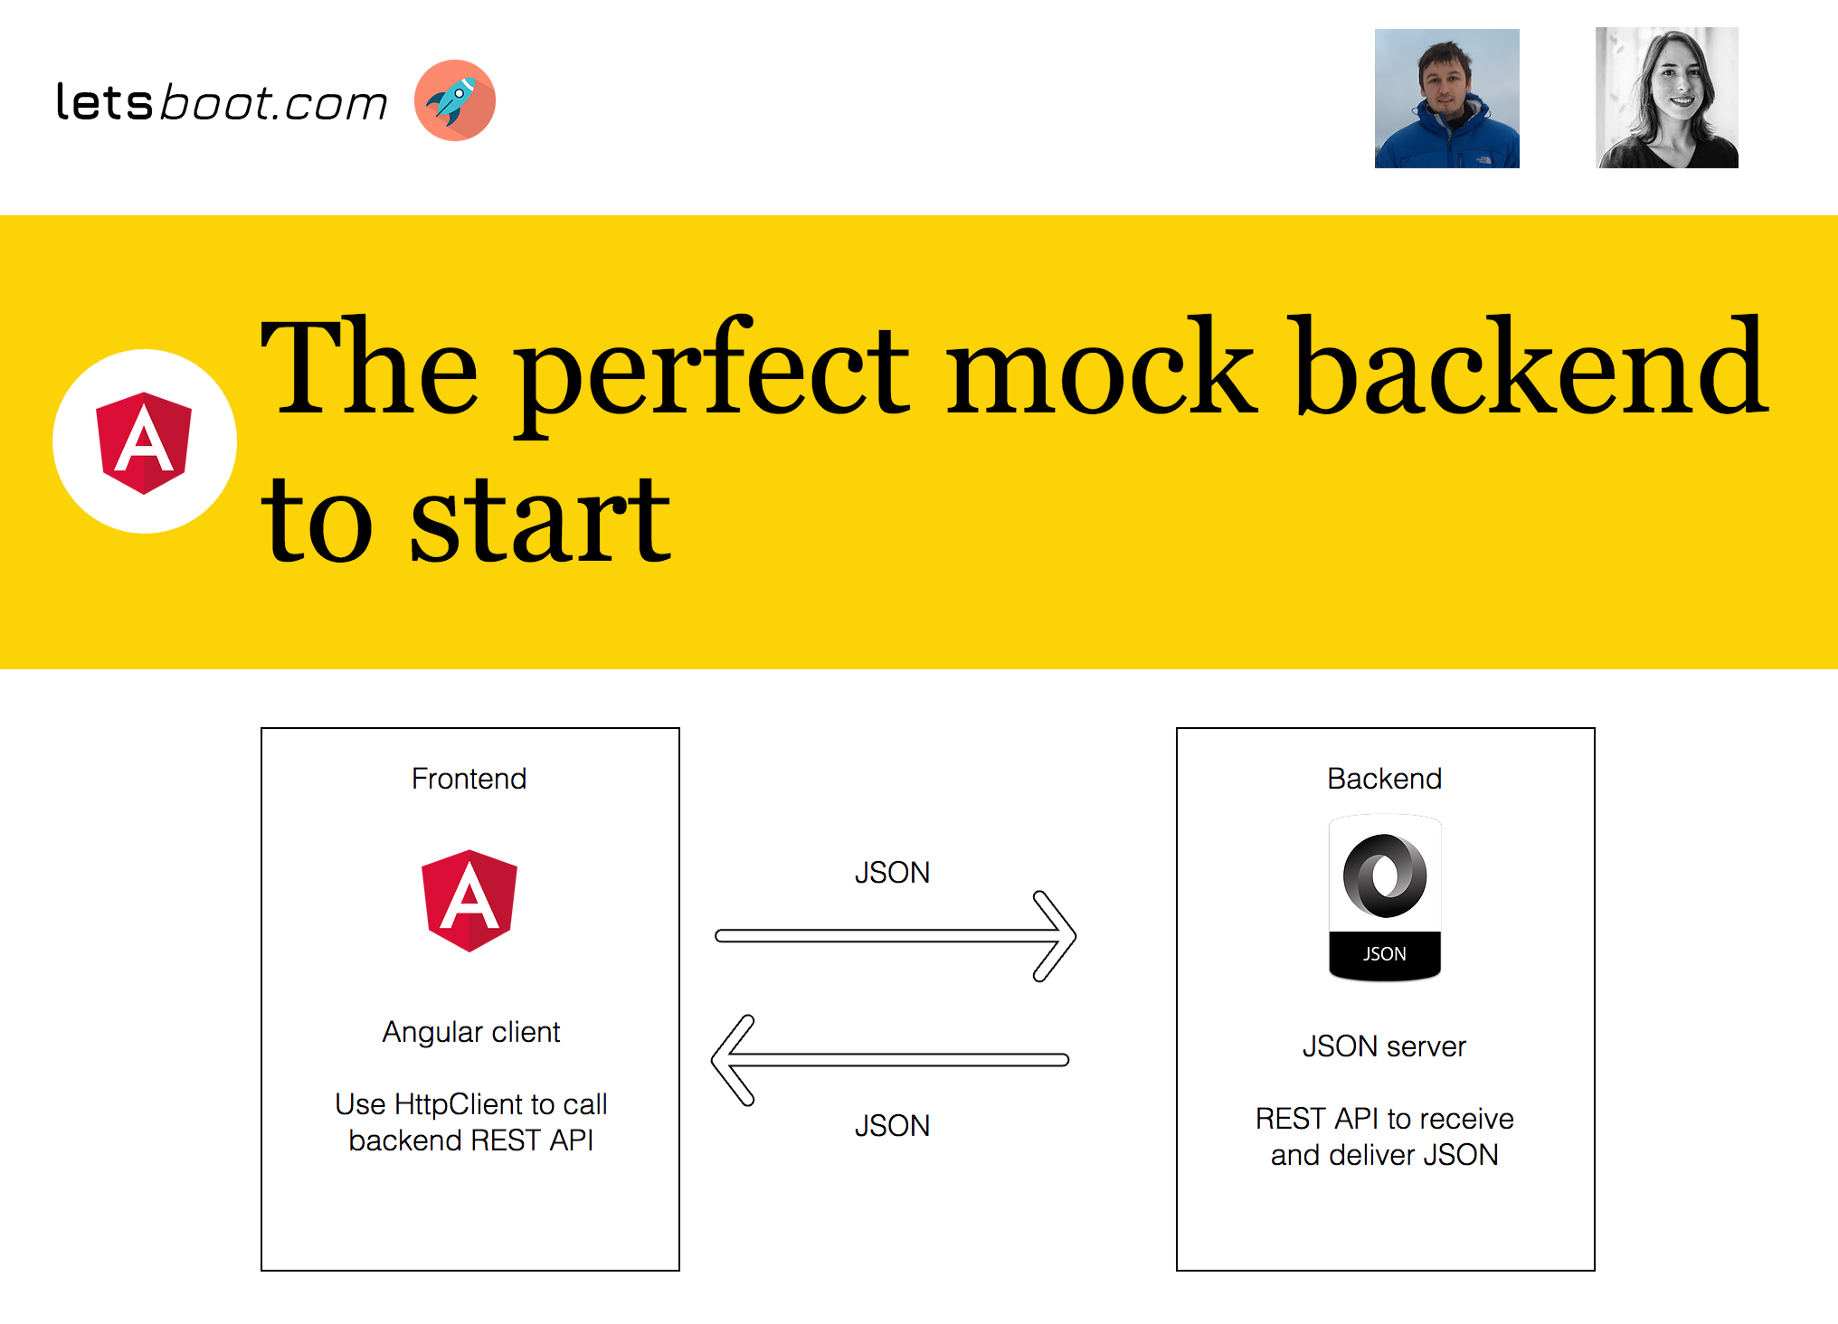 The perfect mock REST backend for your Angular app - letsboot - Medium